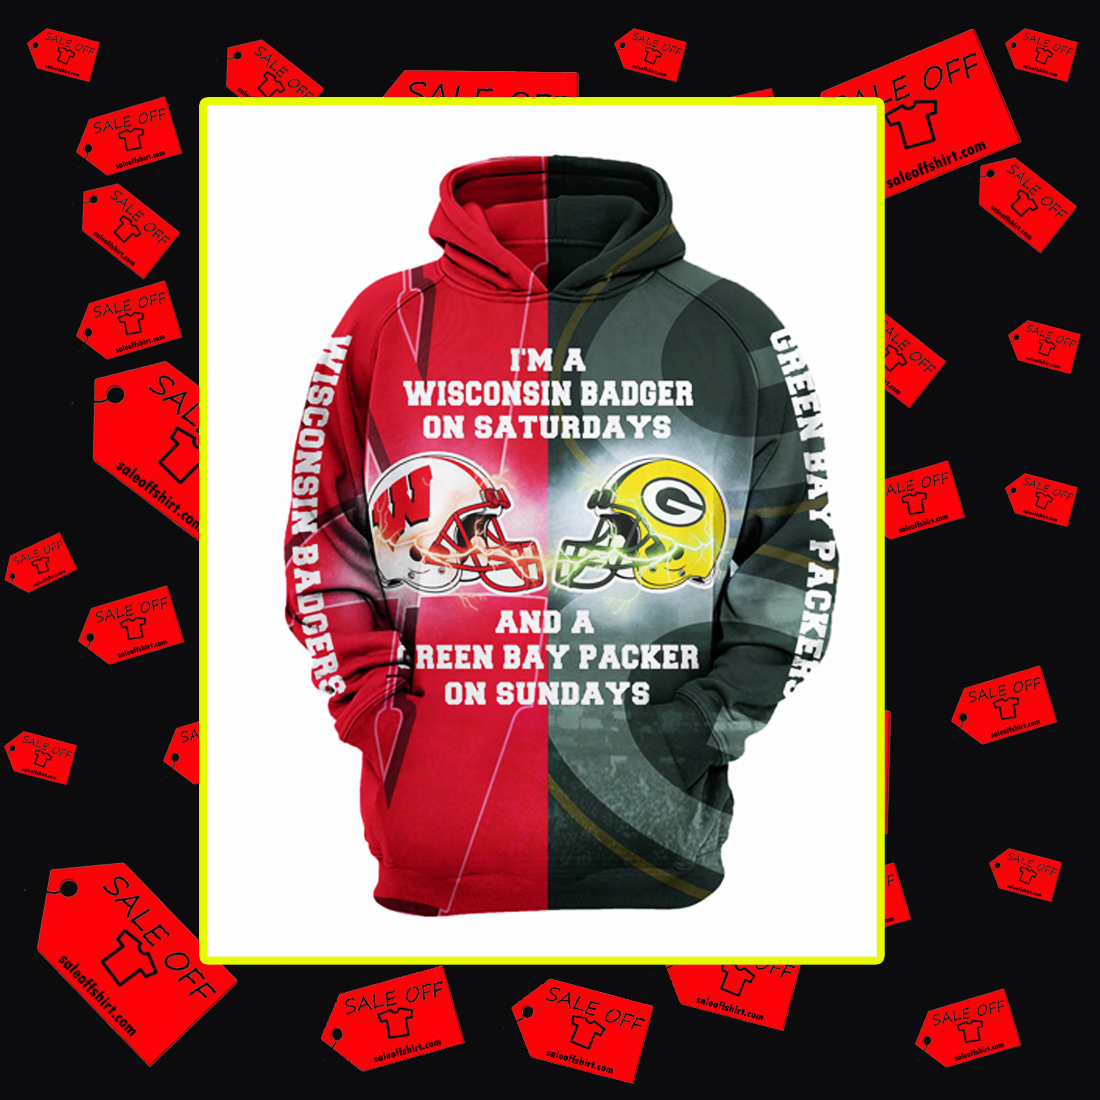 I'm a Wisconsin Badger on Saturdays and a Green Bay Packer on Sundays 3d hoodie